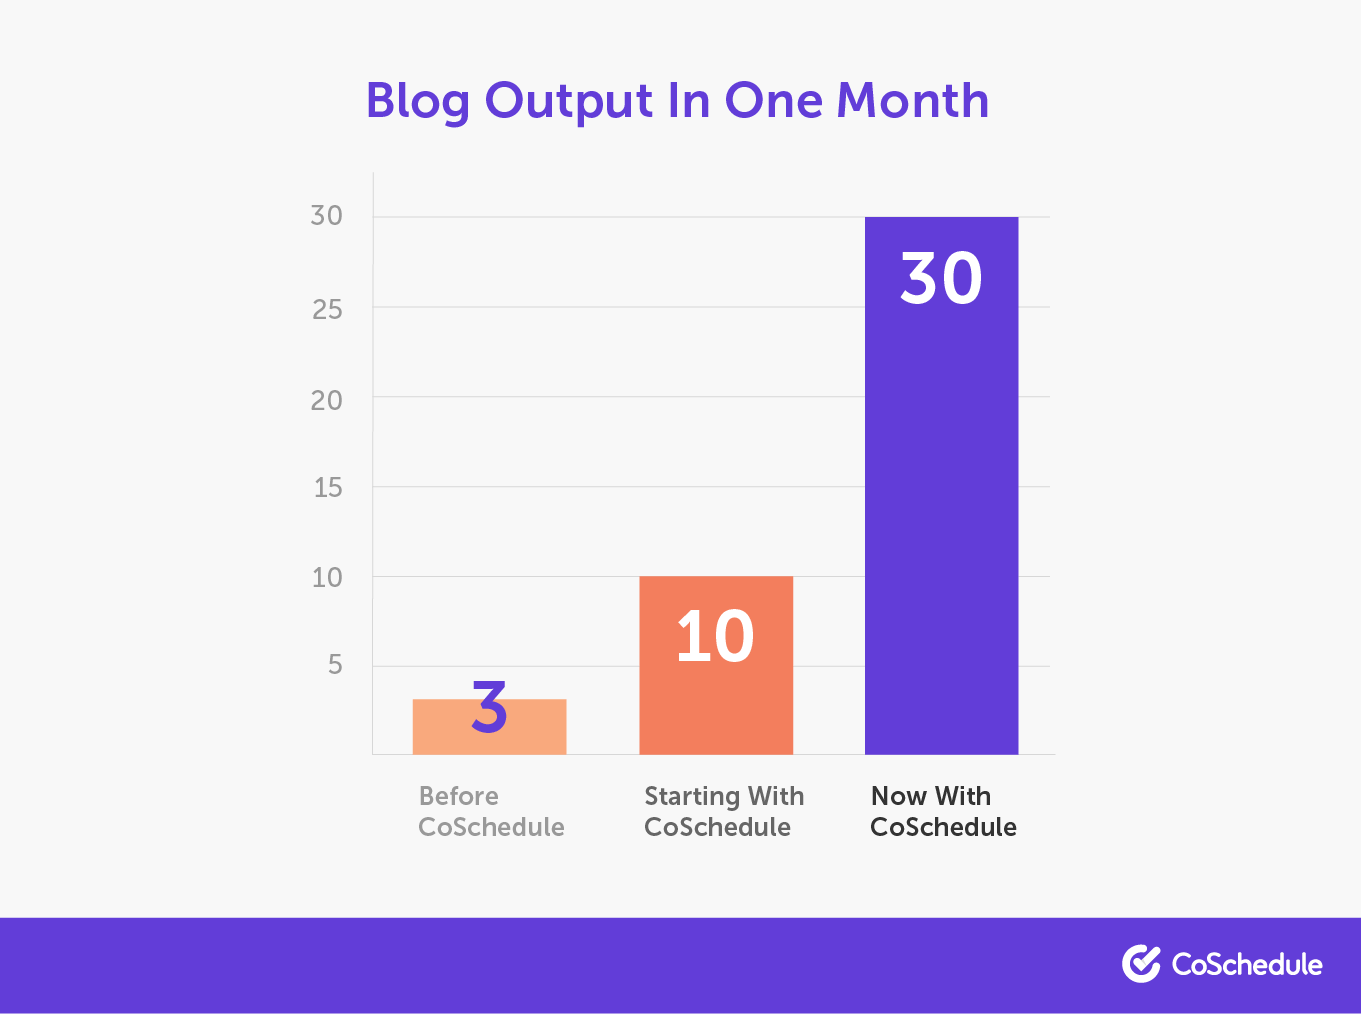 One month blog output